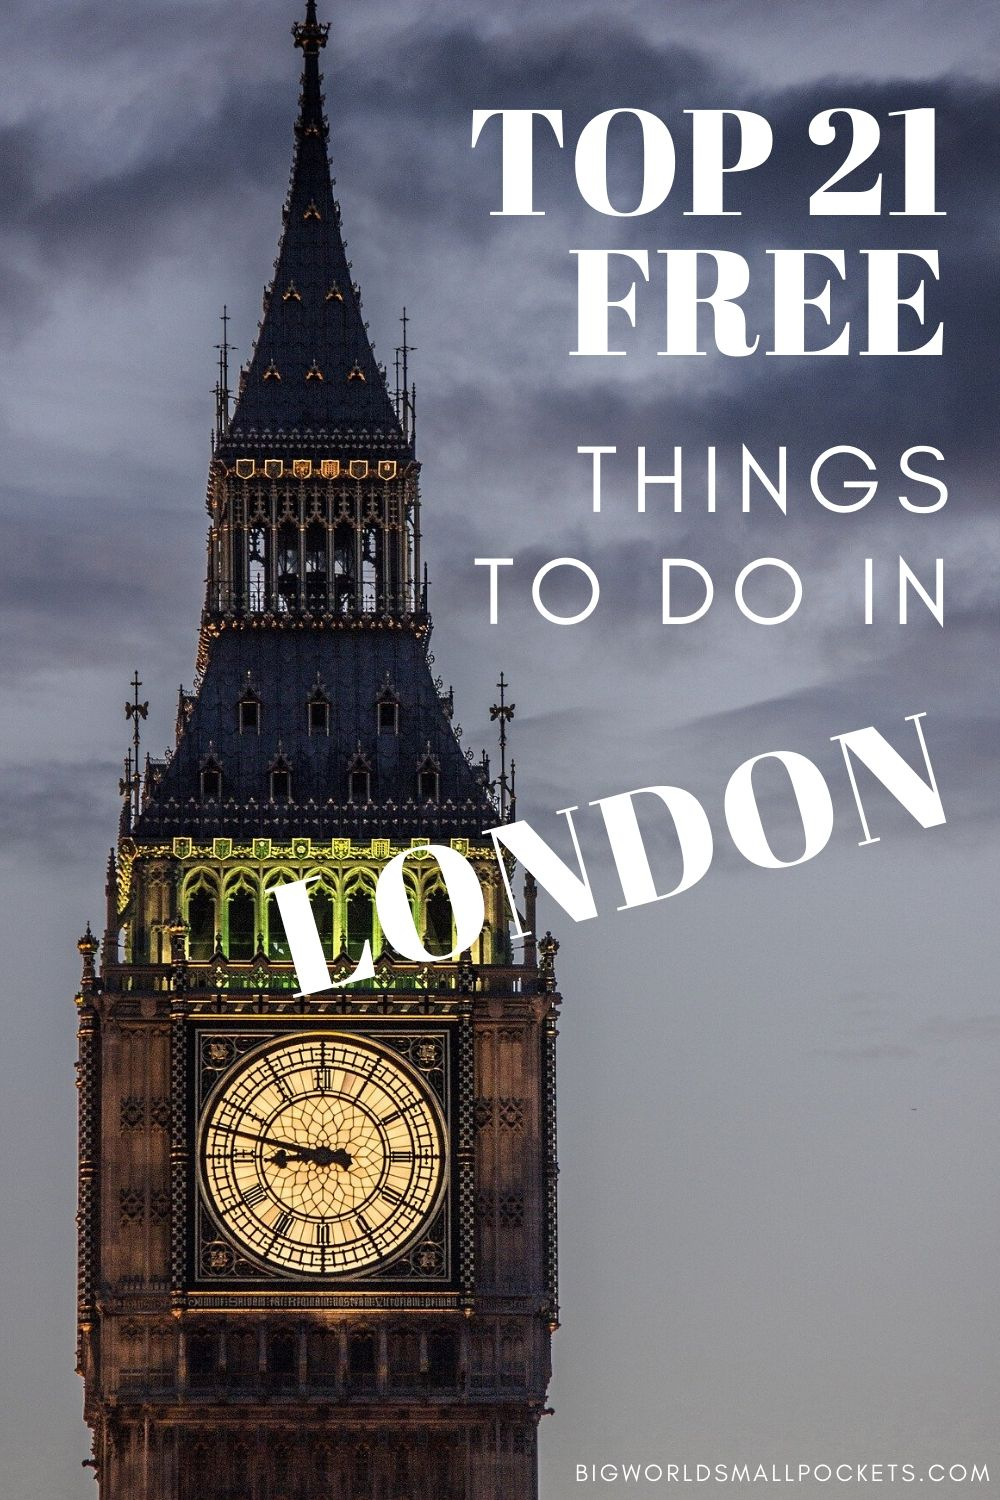 Top 21 Free Things To Do in London!